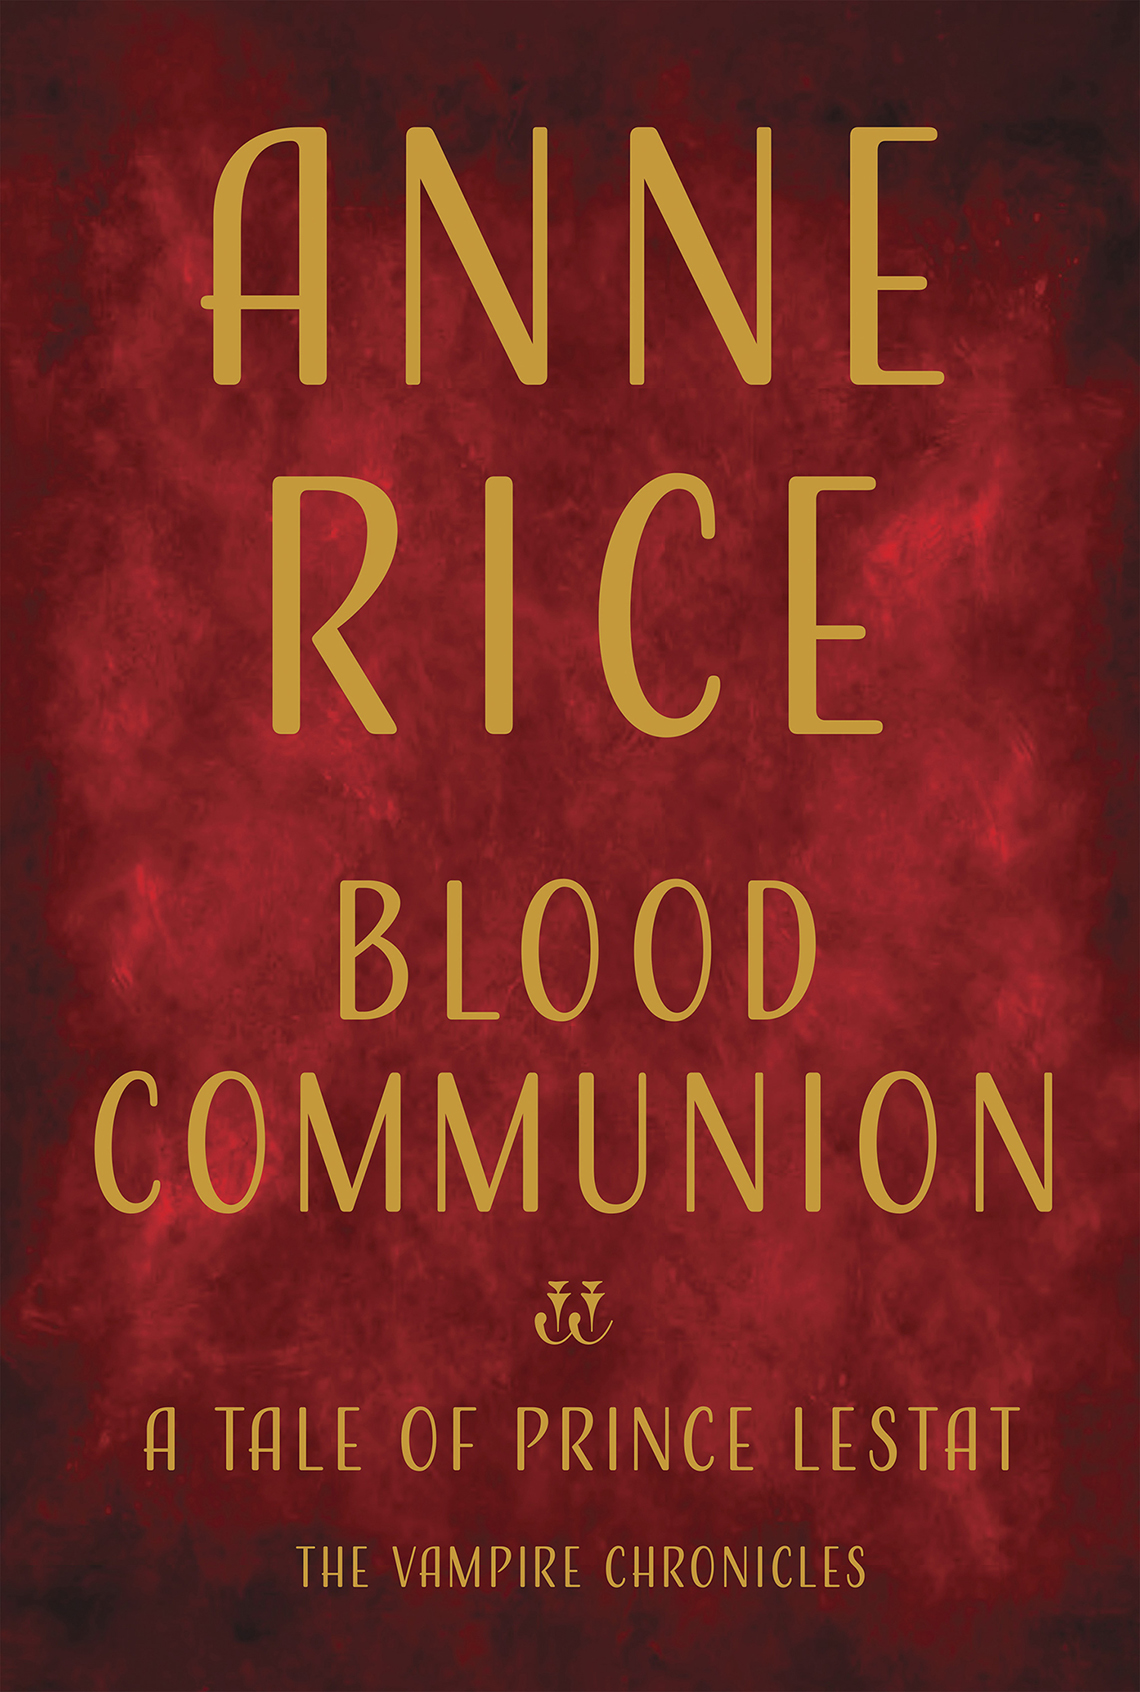 """Book cover, text reads """"Anne Rice, Blood Communion, A Tale of Prince Lestat, The Vampire Chronicles"""""""